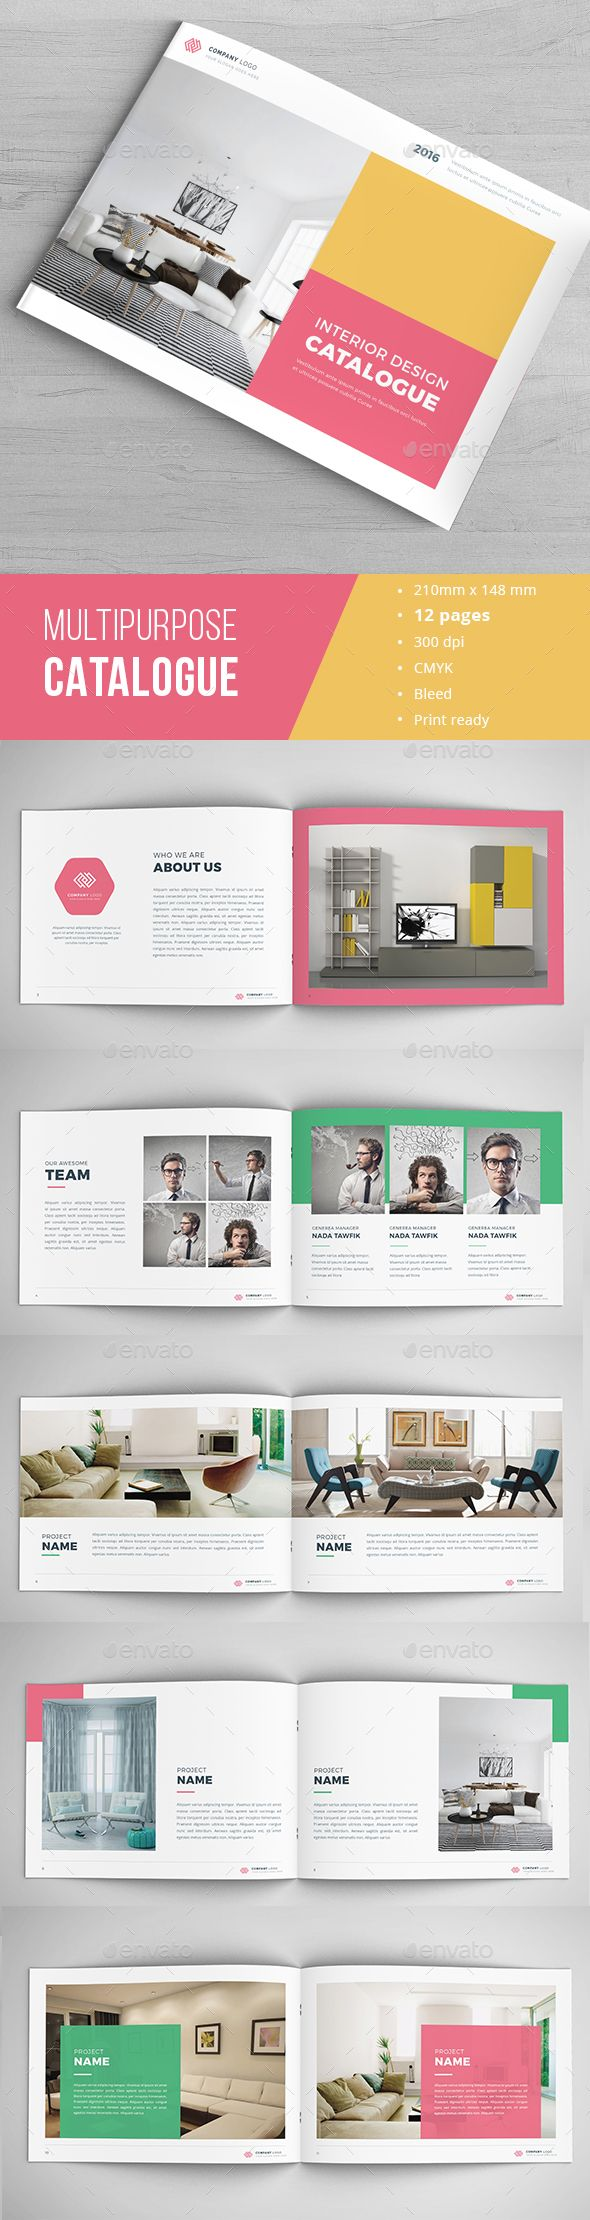 92 best Product Catalog Template & Design images on Pinterest ...